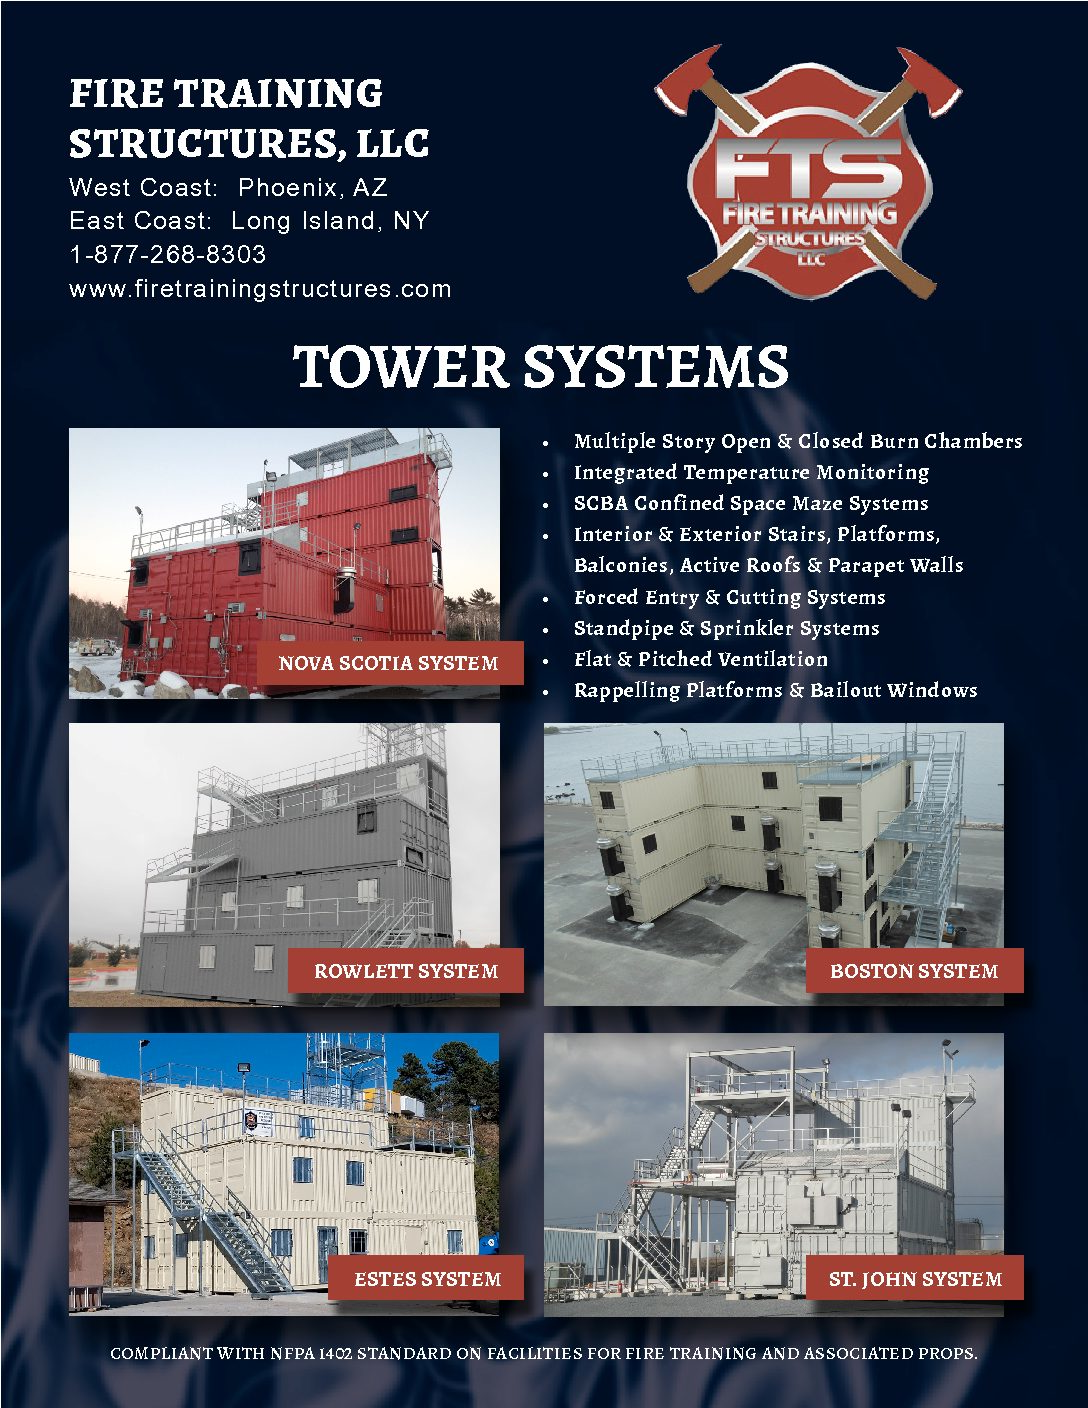 Image of a brochure of Fire Tower System